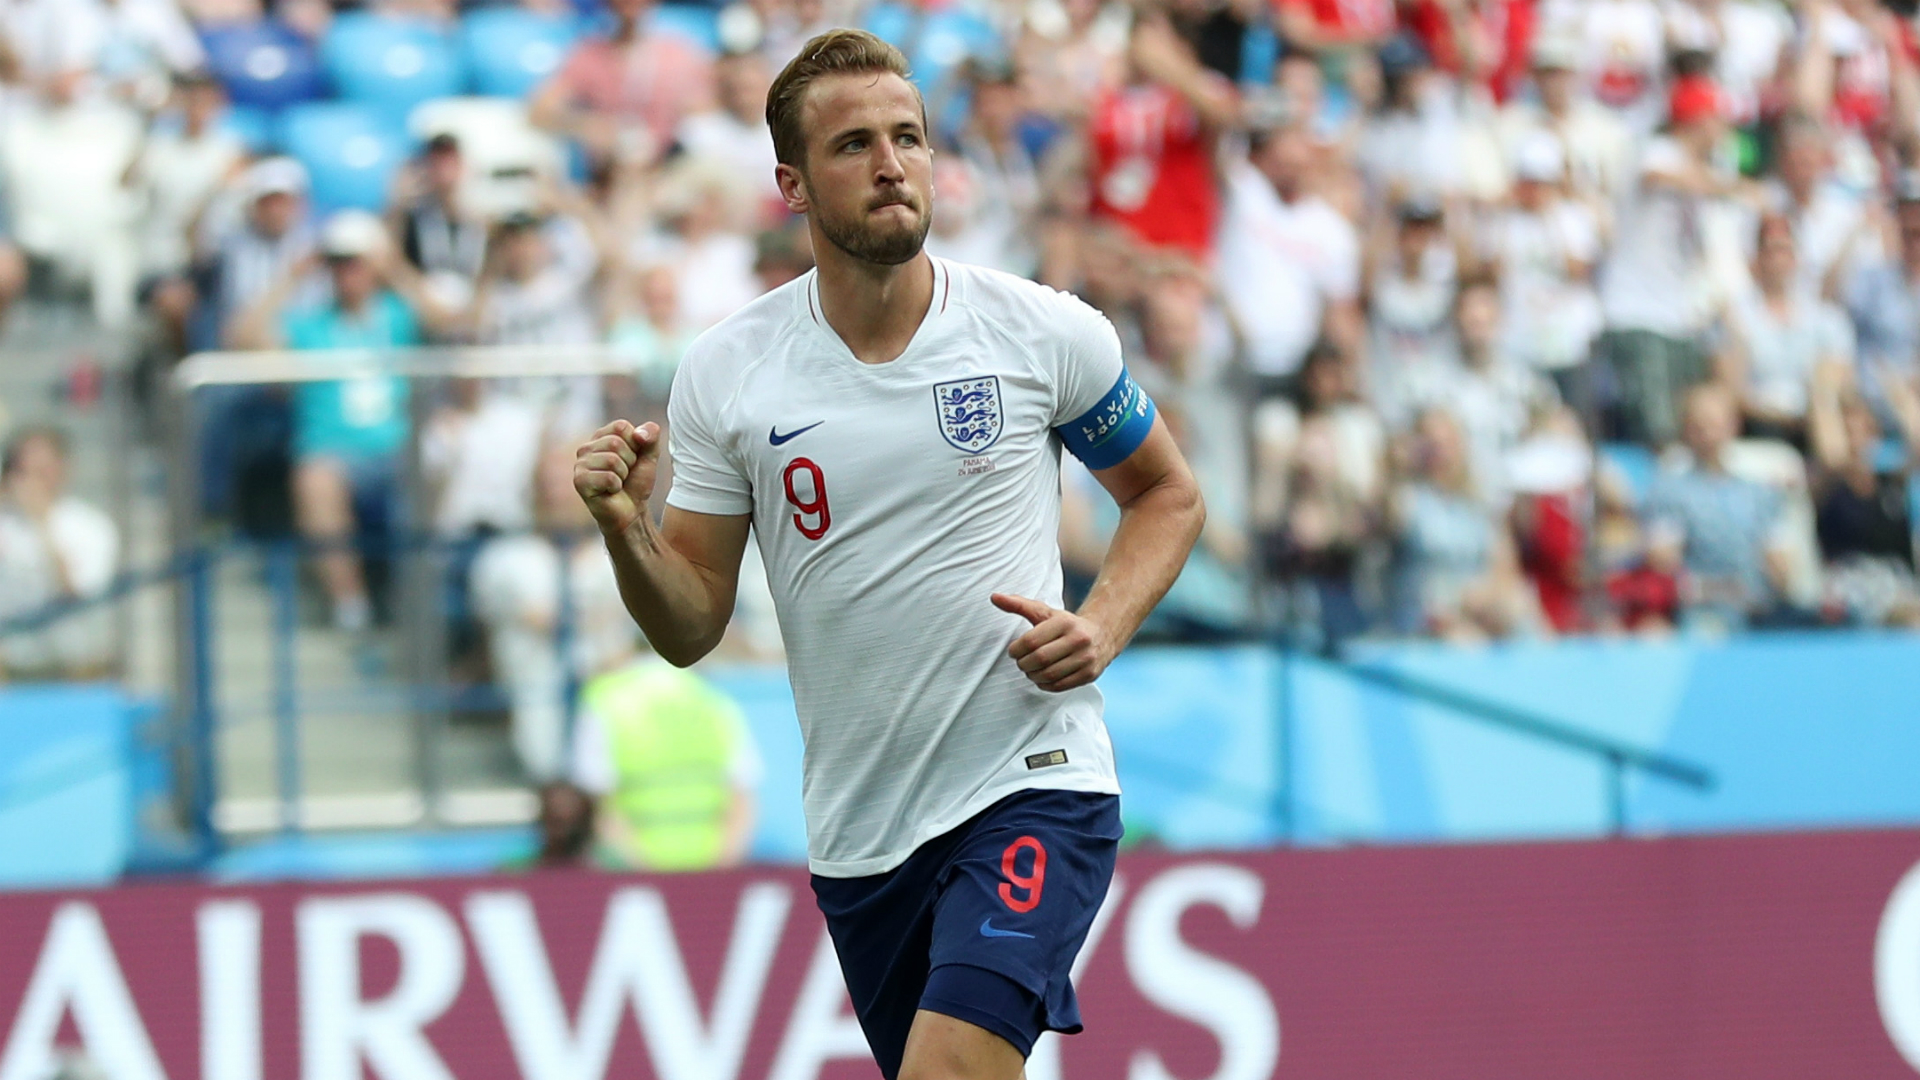 Leading England is easy, says Kane